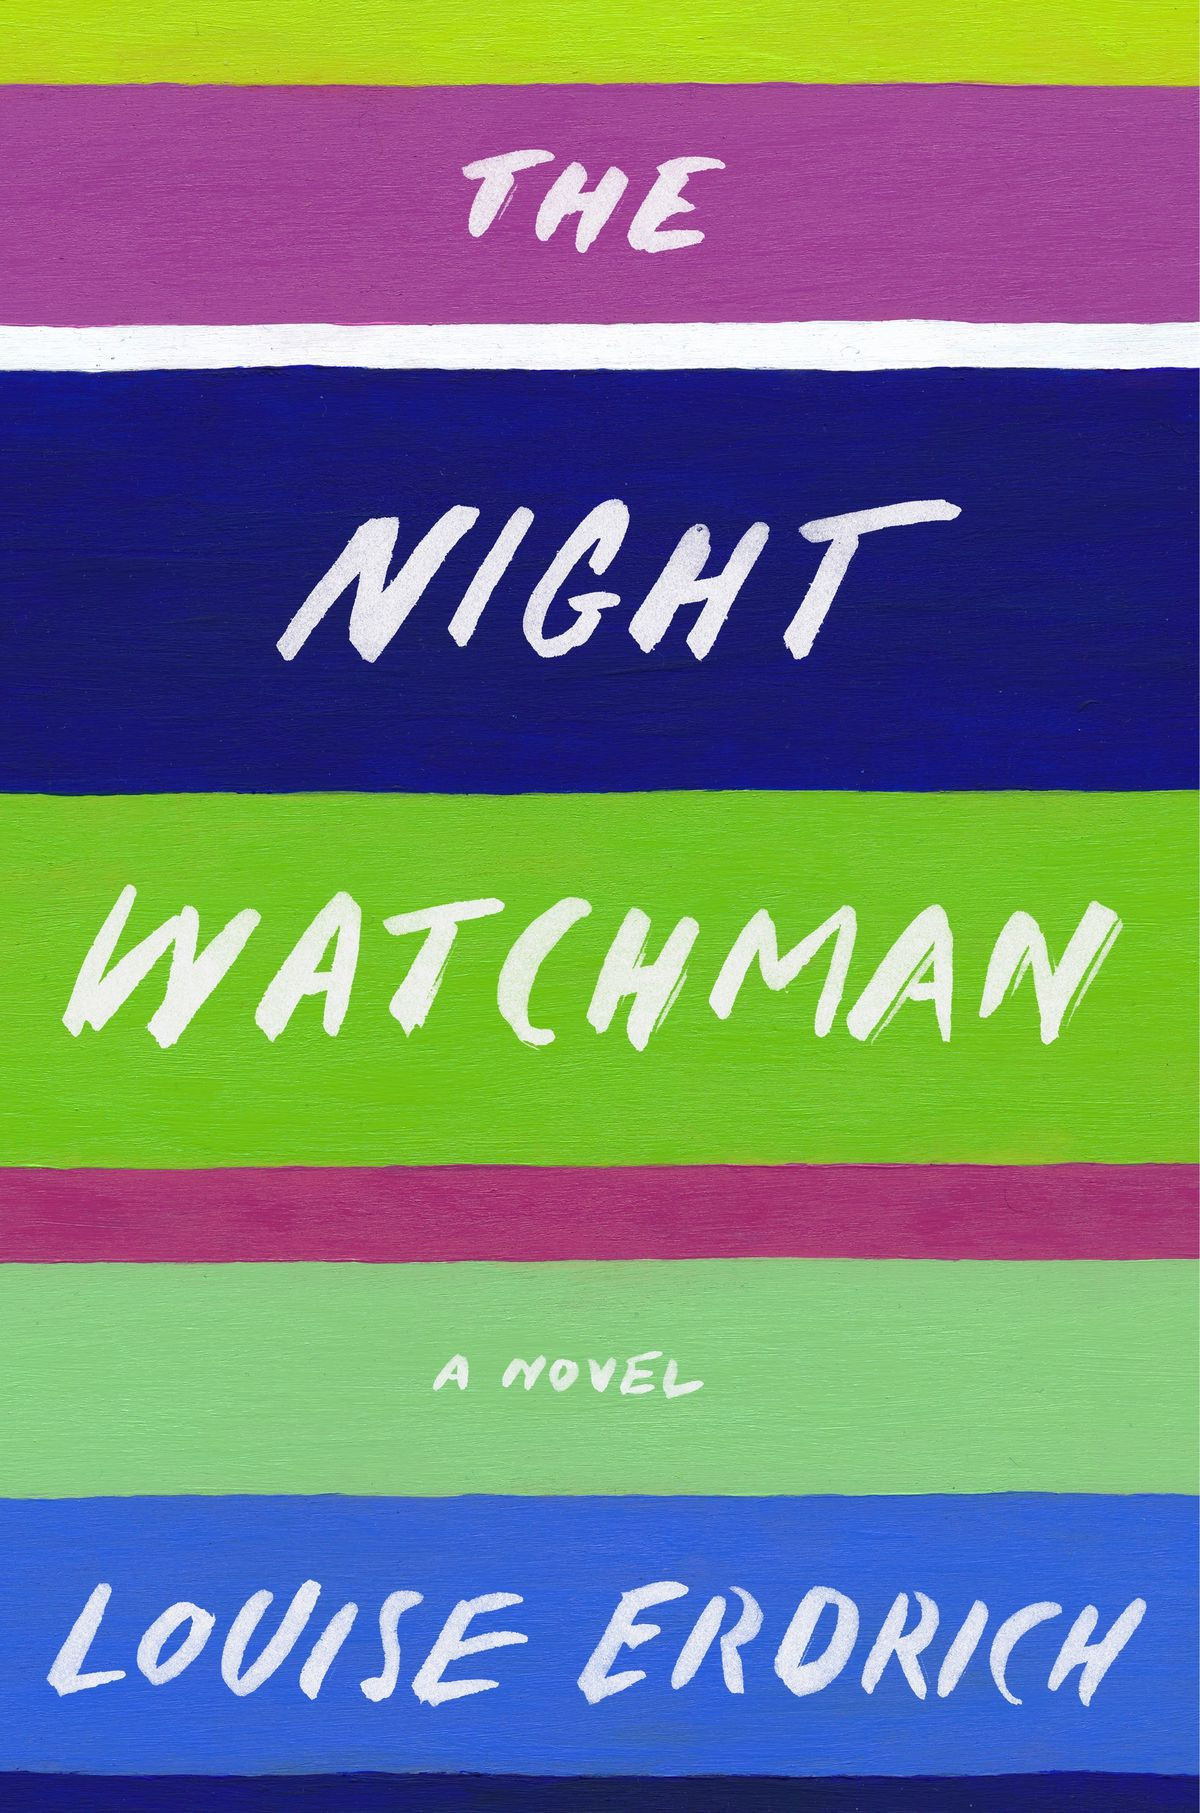 """Click for a sampling of Louise Erdrich's """"The Night Watchman."""""""